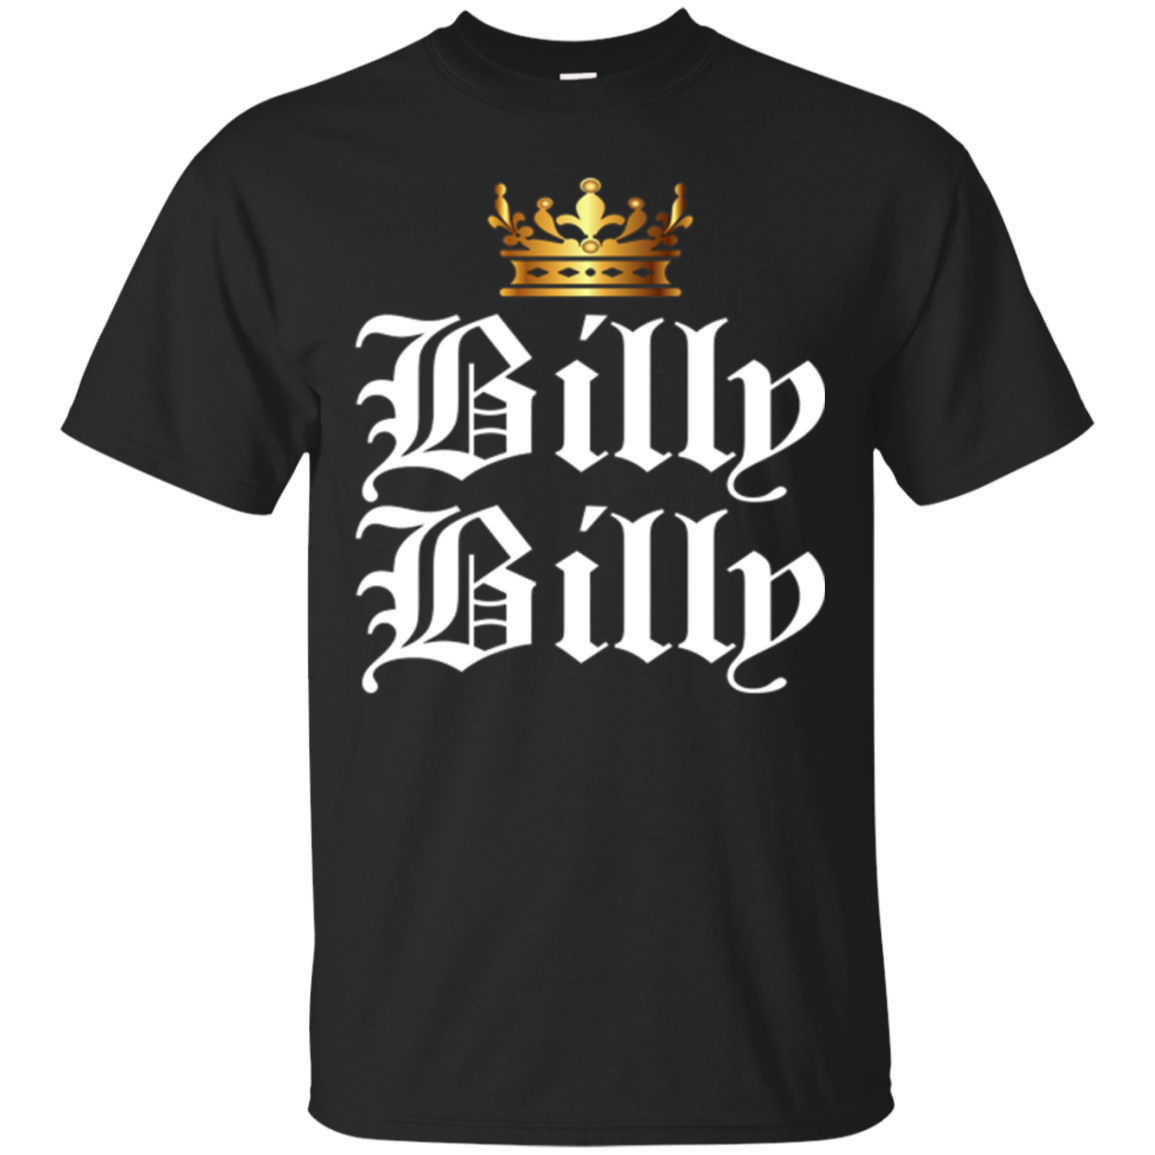 Billy Billy T-Shirt have fun and support your favorite Bill